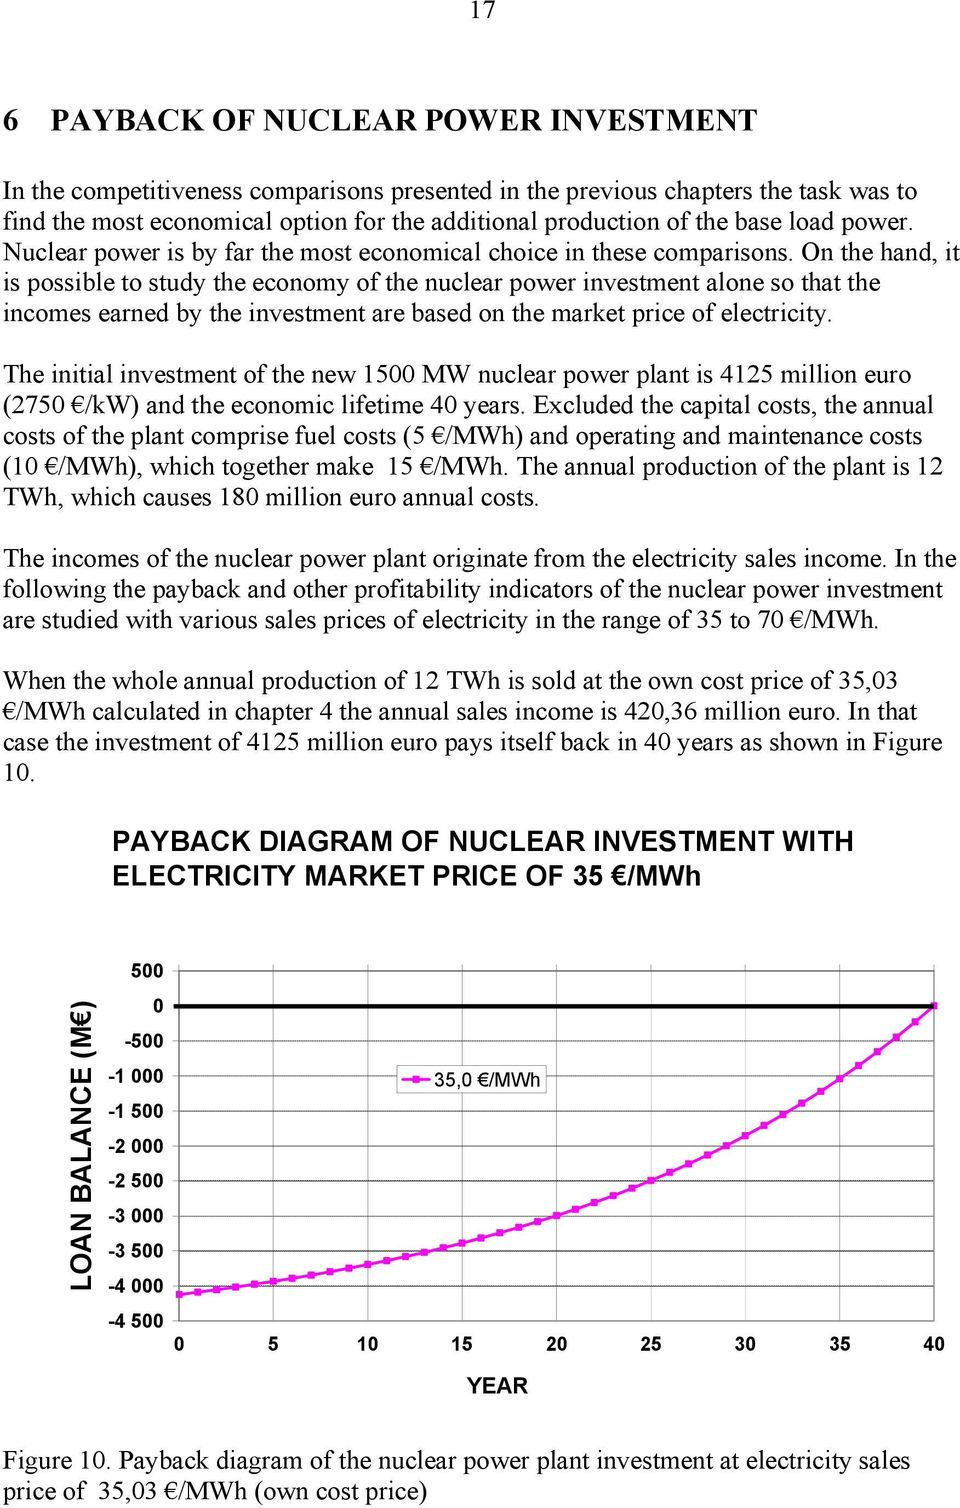 On the hand, it is possible to study the economy of the nuclear power investment alone so that the incomes earned by the investment are based on the market price of electricity.